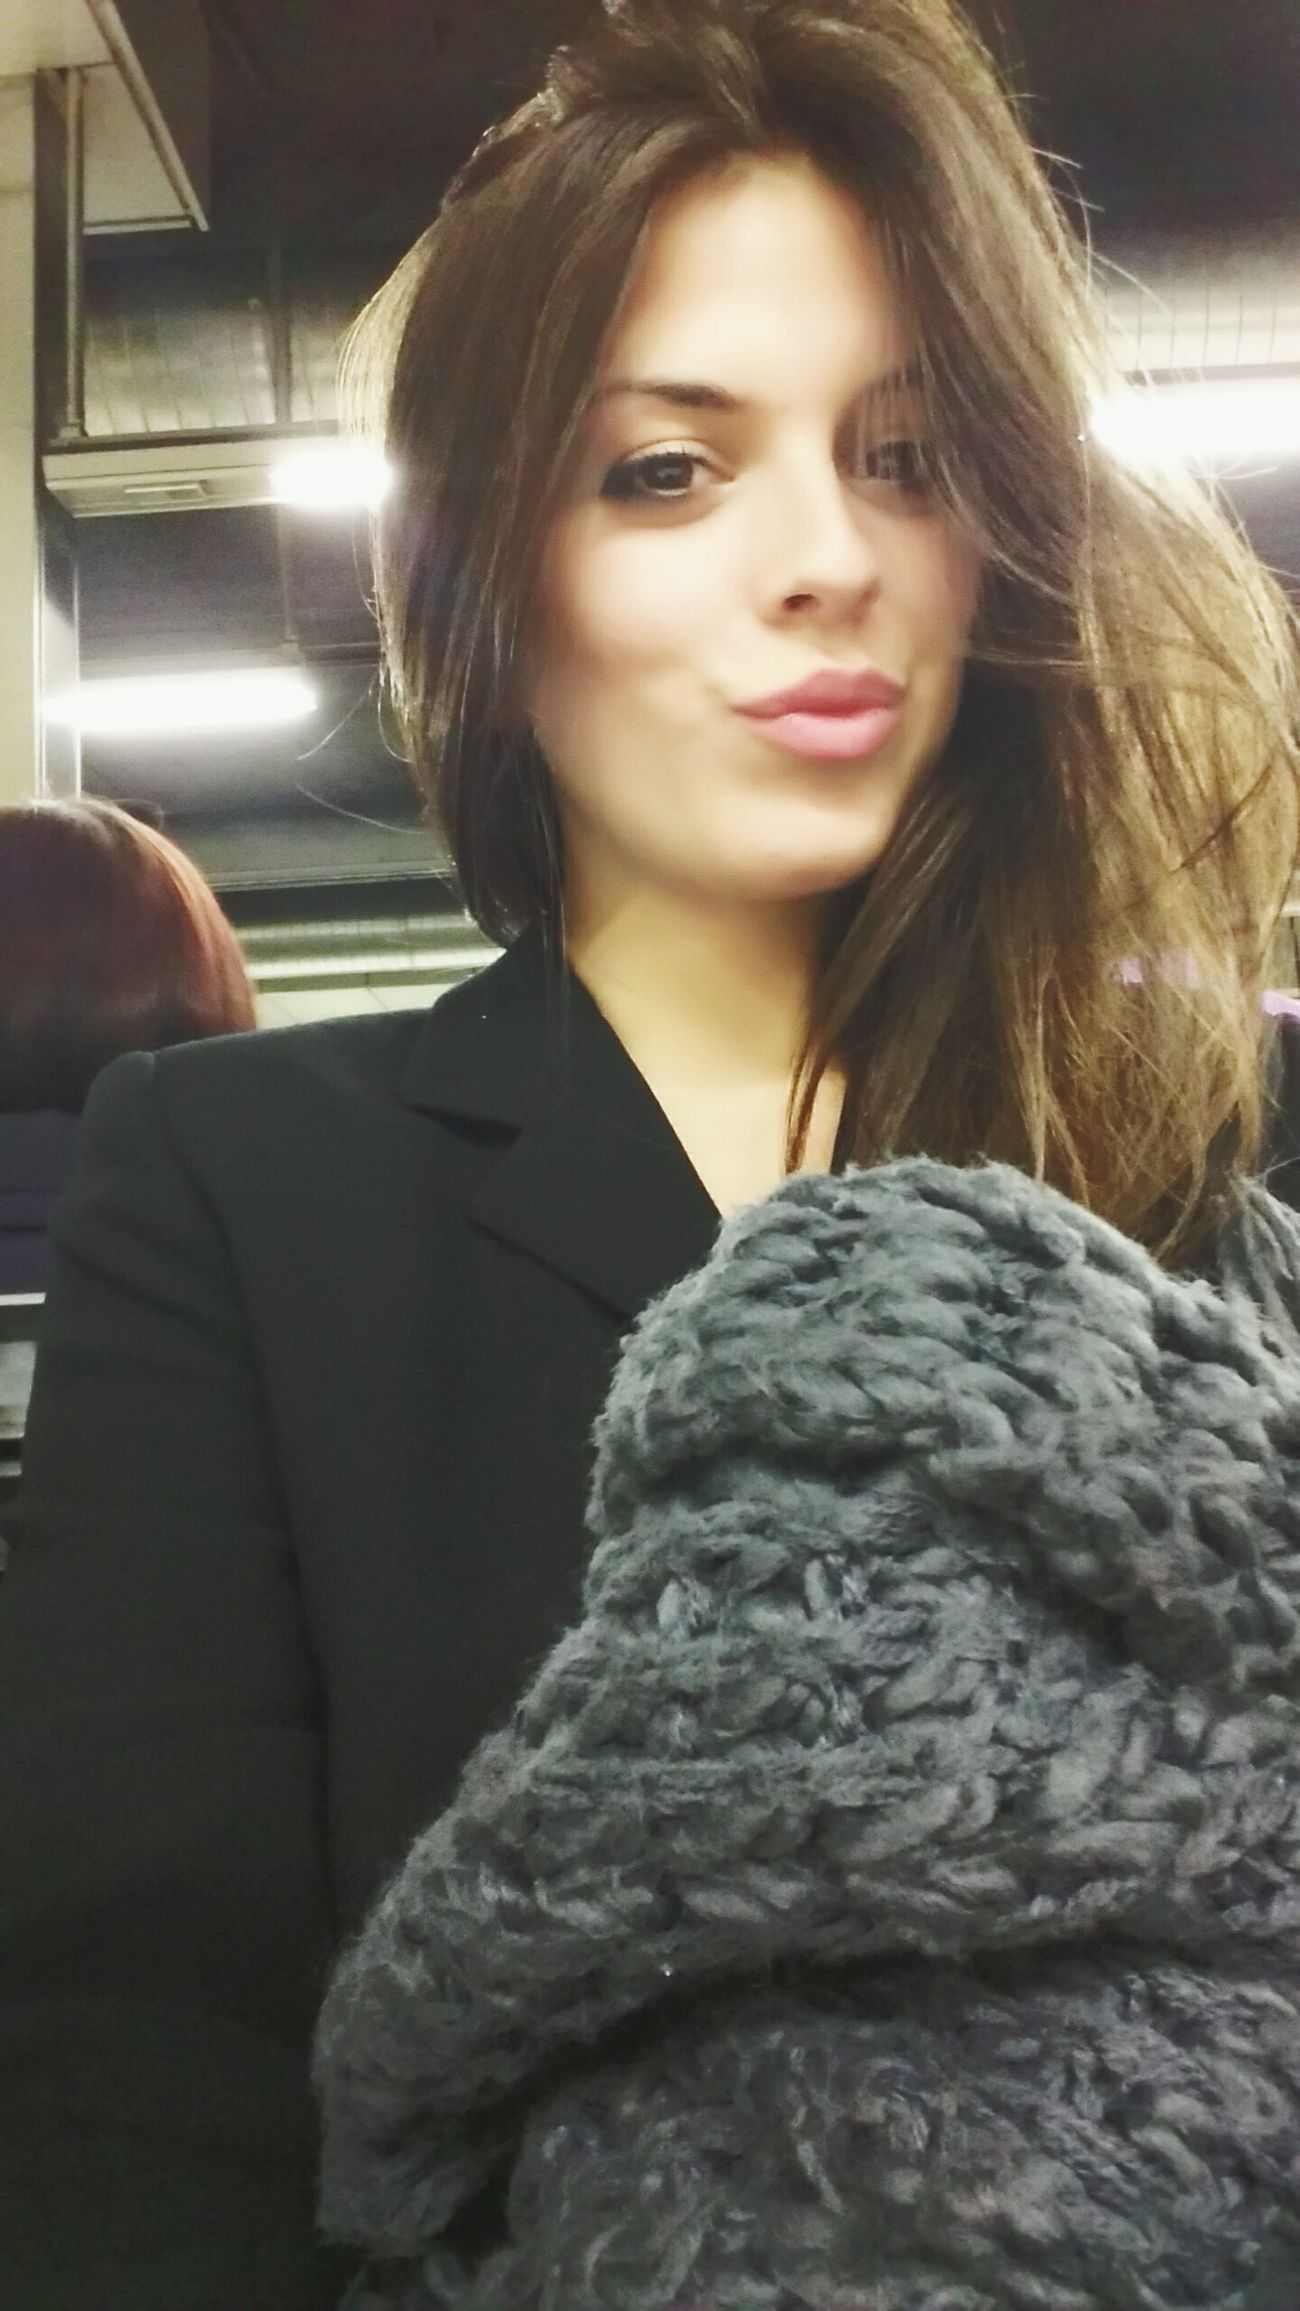 Smile ✌ Kiss Selfie ✌ Train Station Barcelona That's Me Timetostudy Friday Night